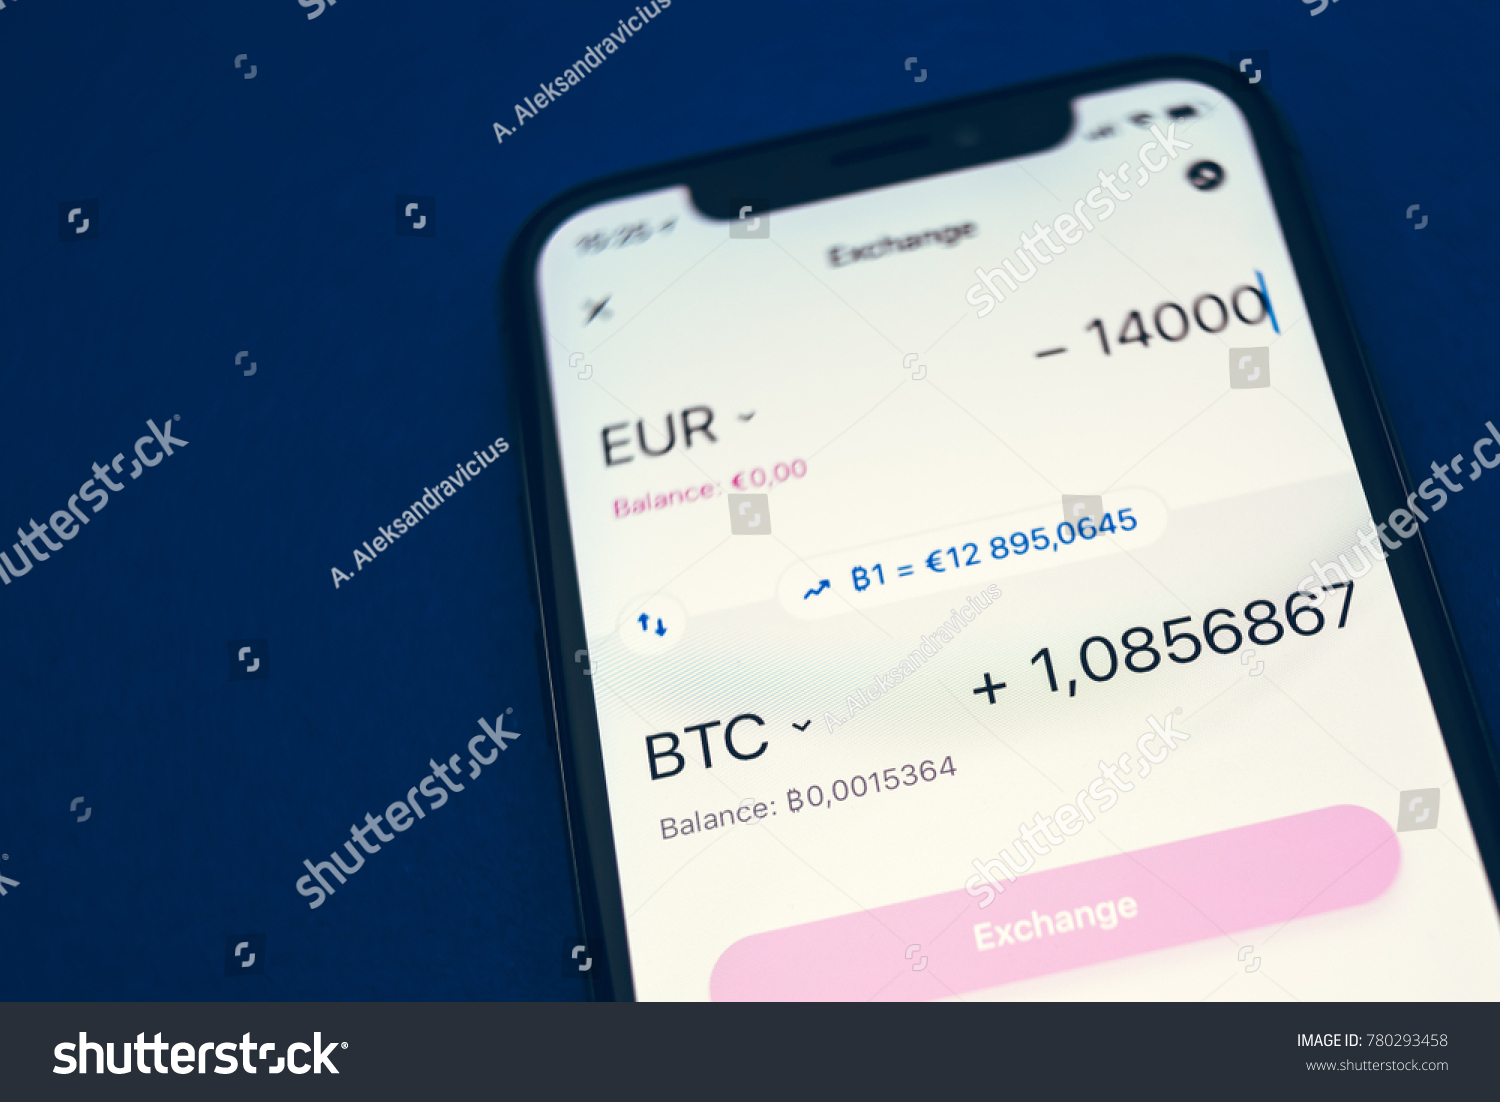 Kaunas lithuania december 23 2017 exchange stock photo edit now kaunas lithuania december 23 2017 exchange rate of bitcoin view of ccuart Choice Image